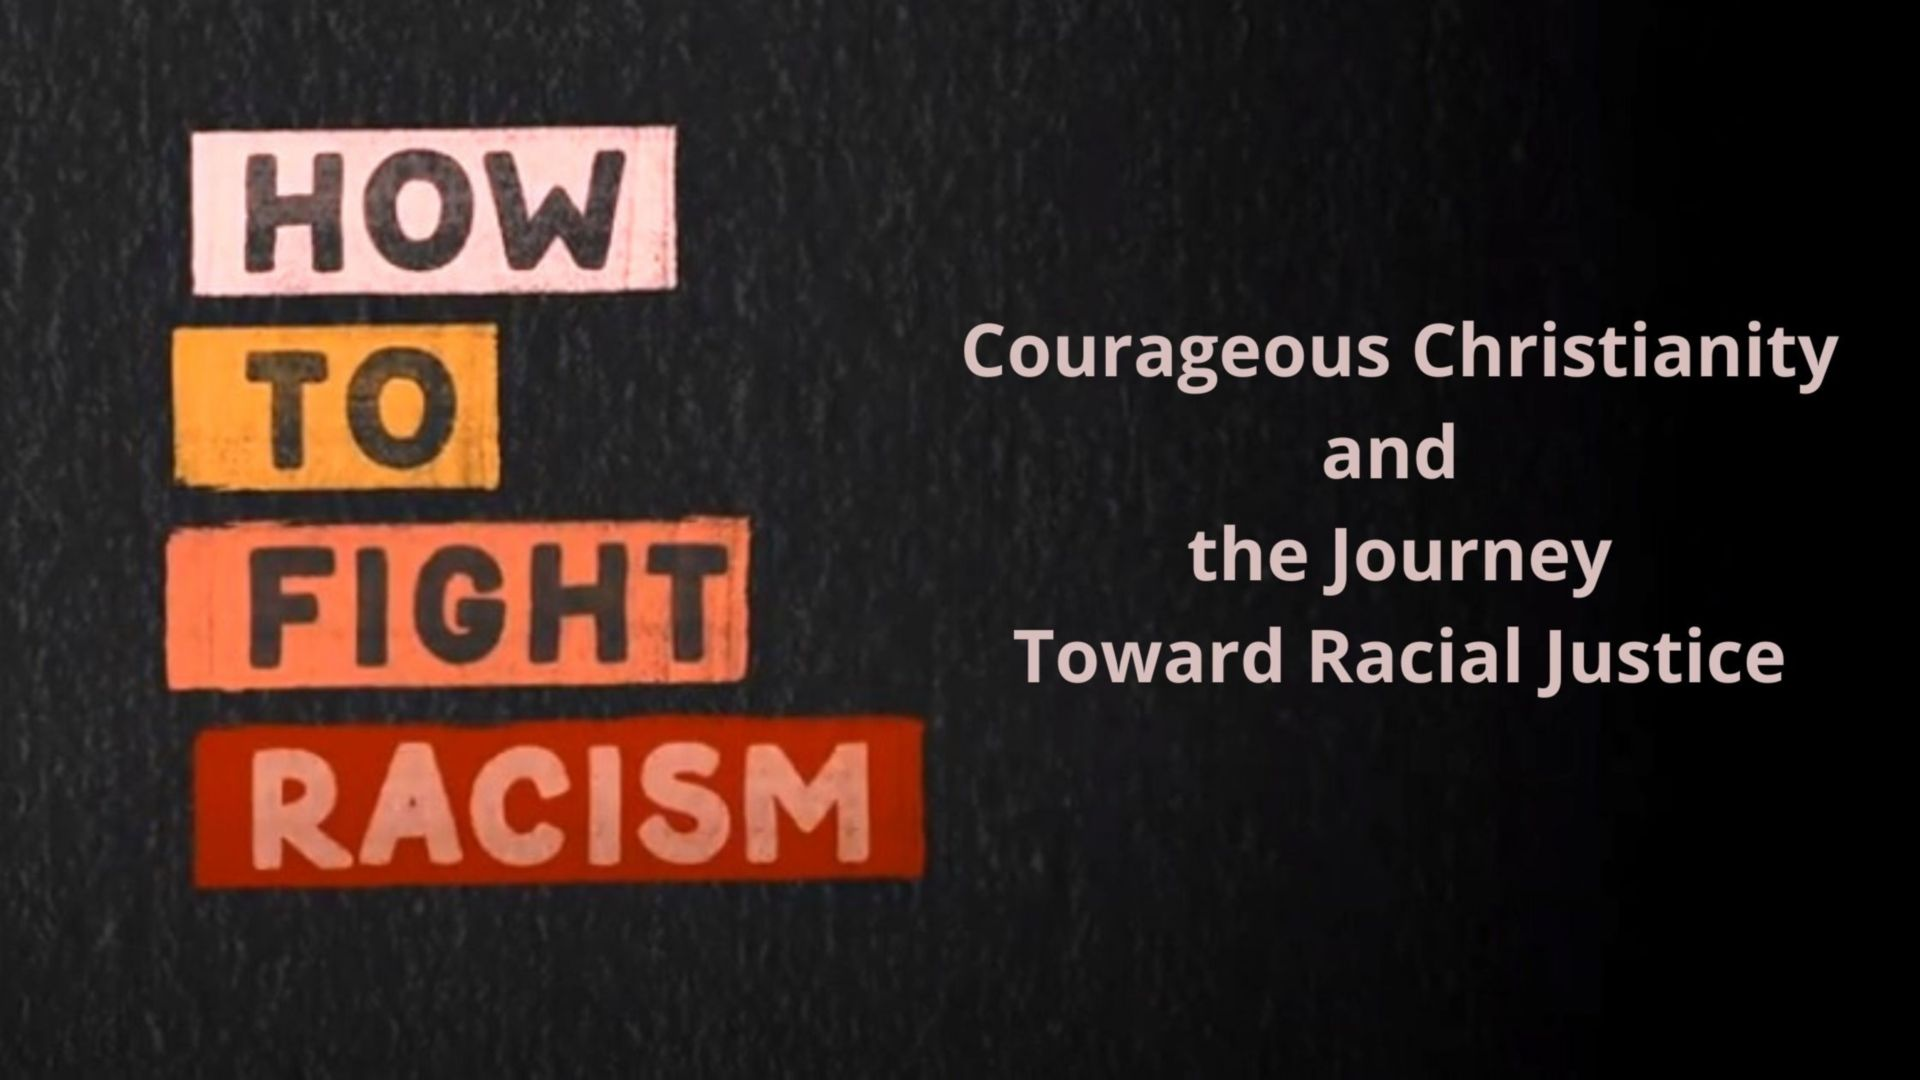 How to Fight Racism, by New York Times best selling author Jemar Tisby